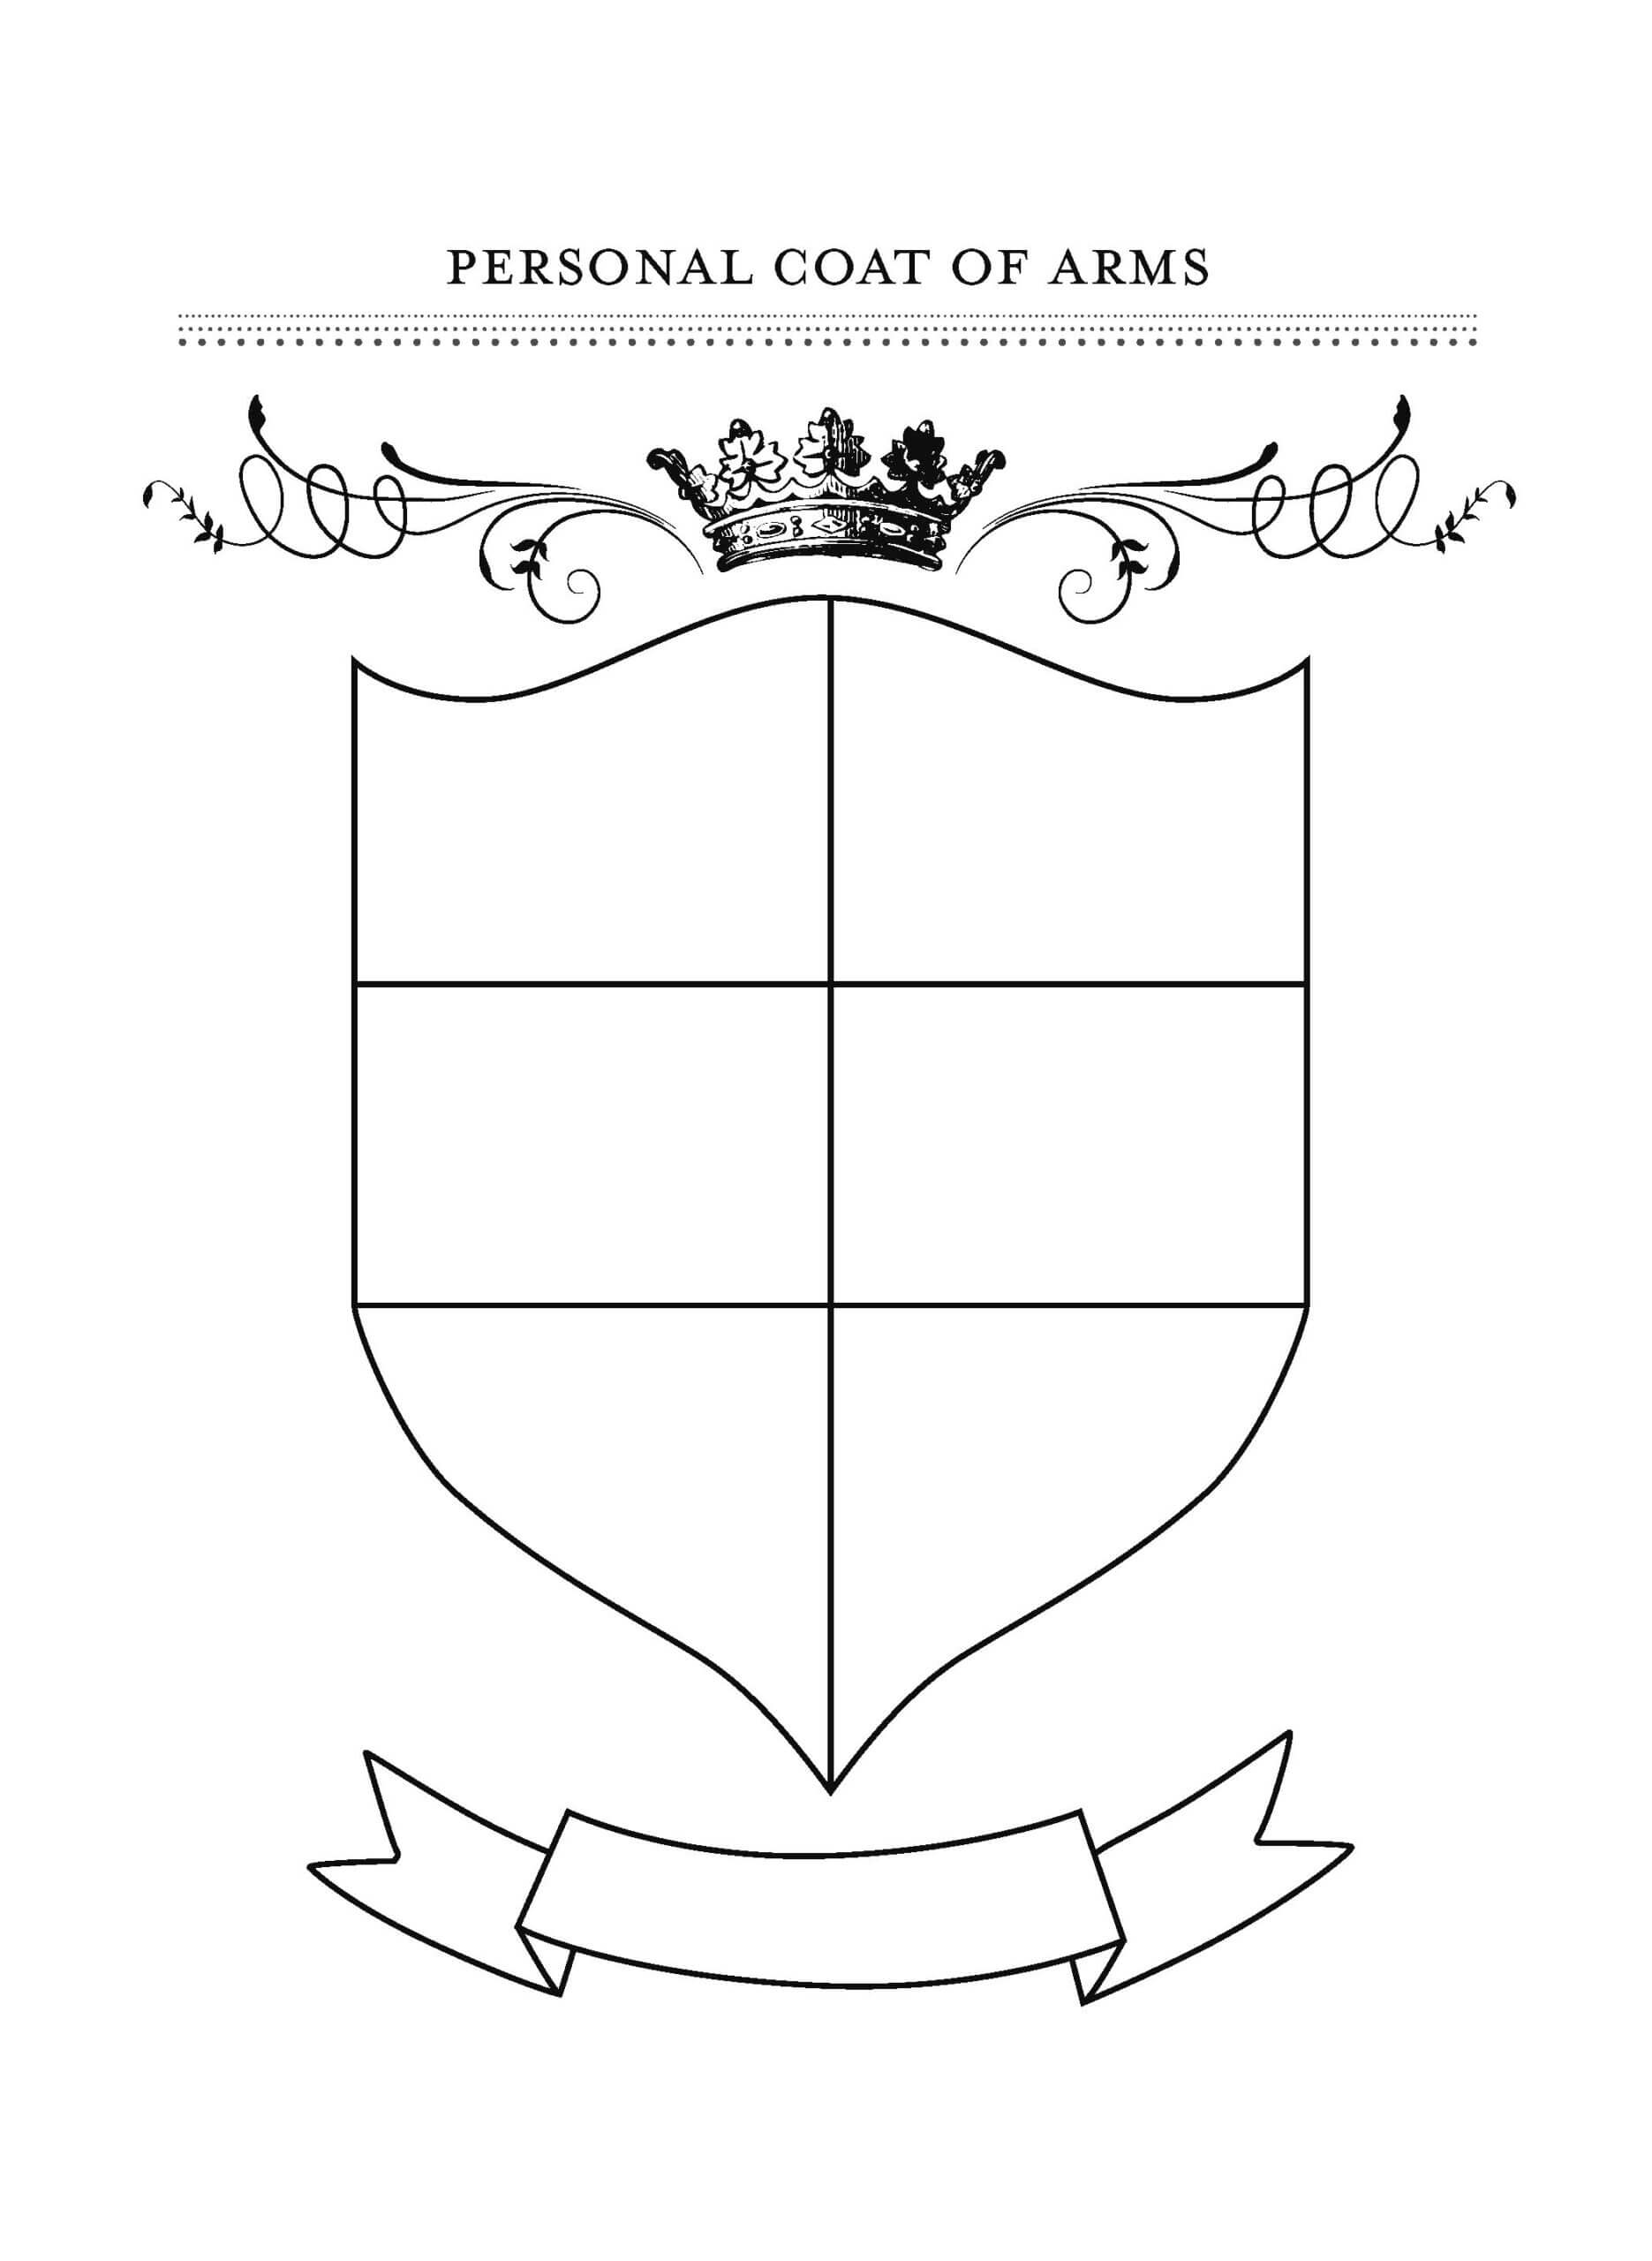 Blank Coat Of Arms Template Png Images Collection For Free With Regard To Blank Shield Template Printable